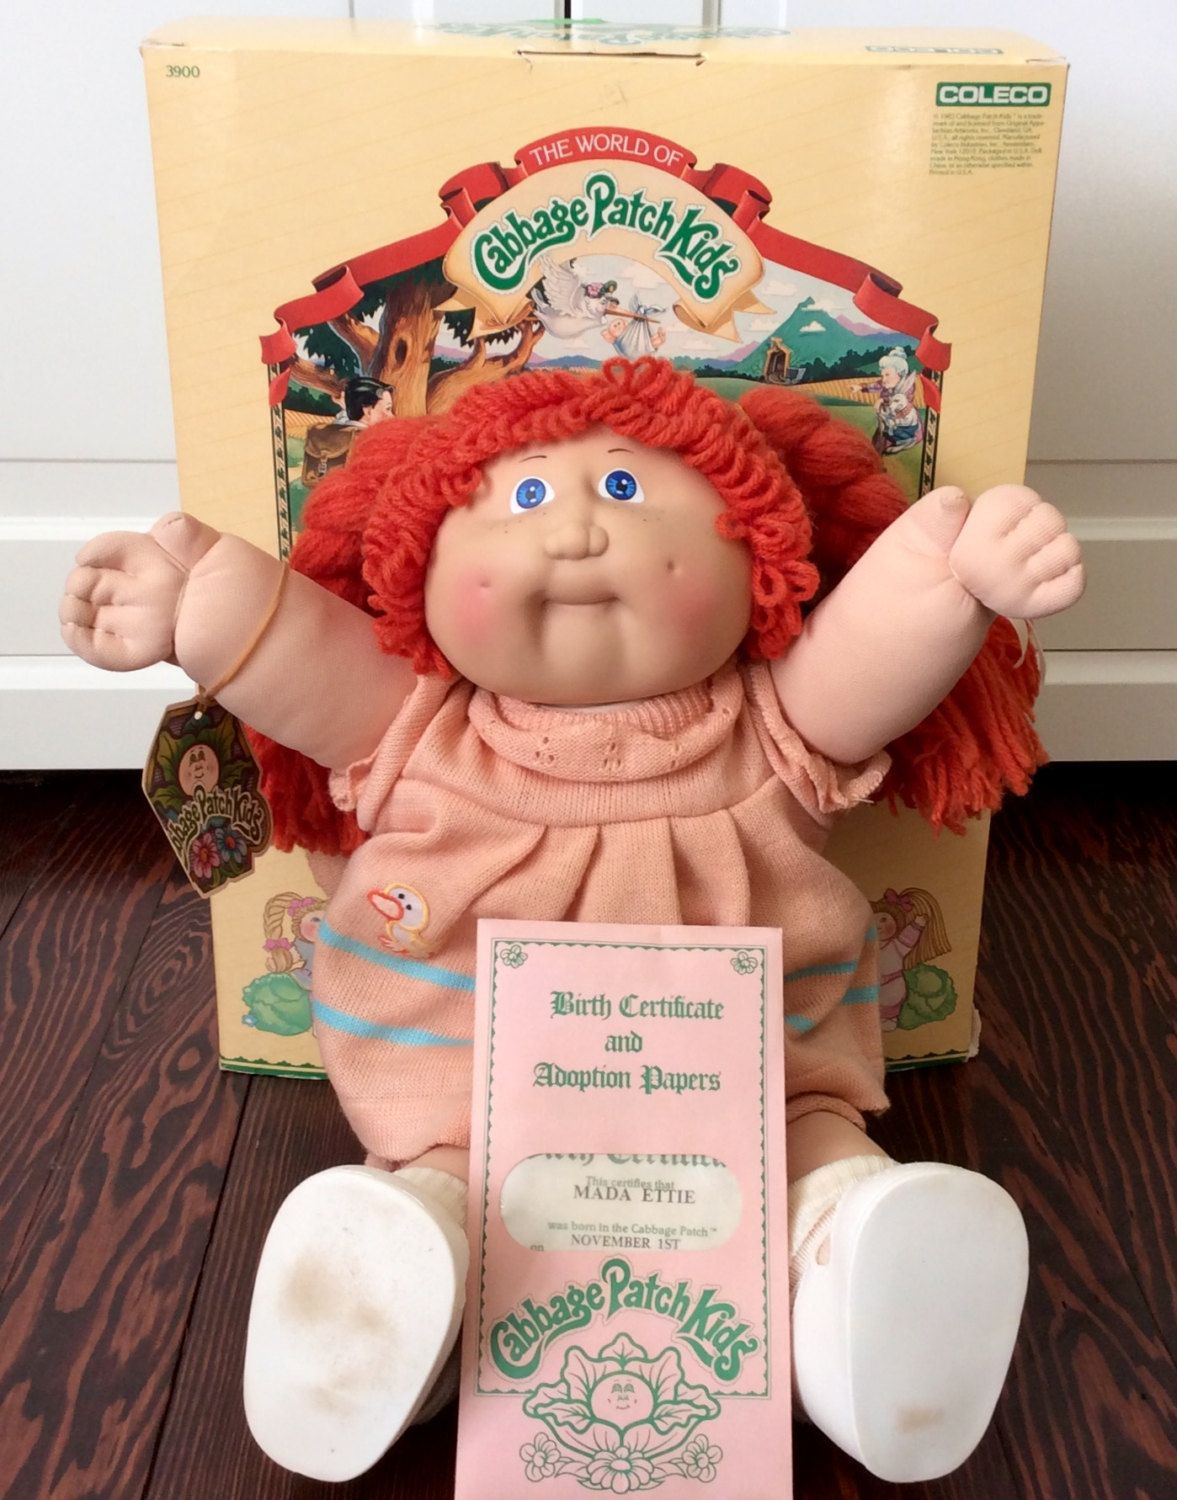 Vintage 1983 Cabbage Patch Kid Rare Red Head With Freckles Etsy Cabbage Patch Kids Cabbage Patch Cabbage Patch Dolls